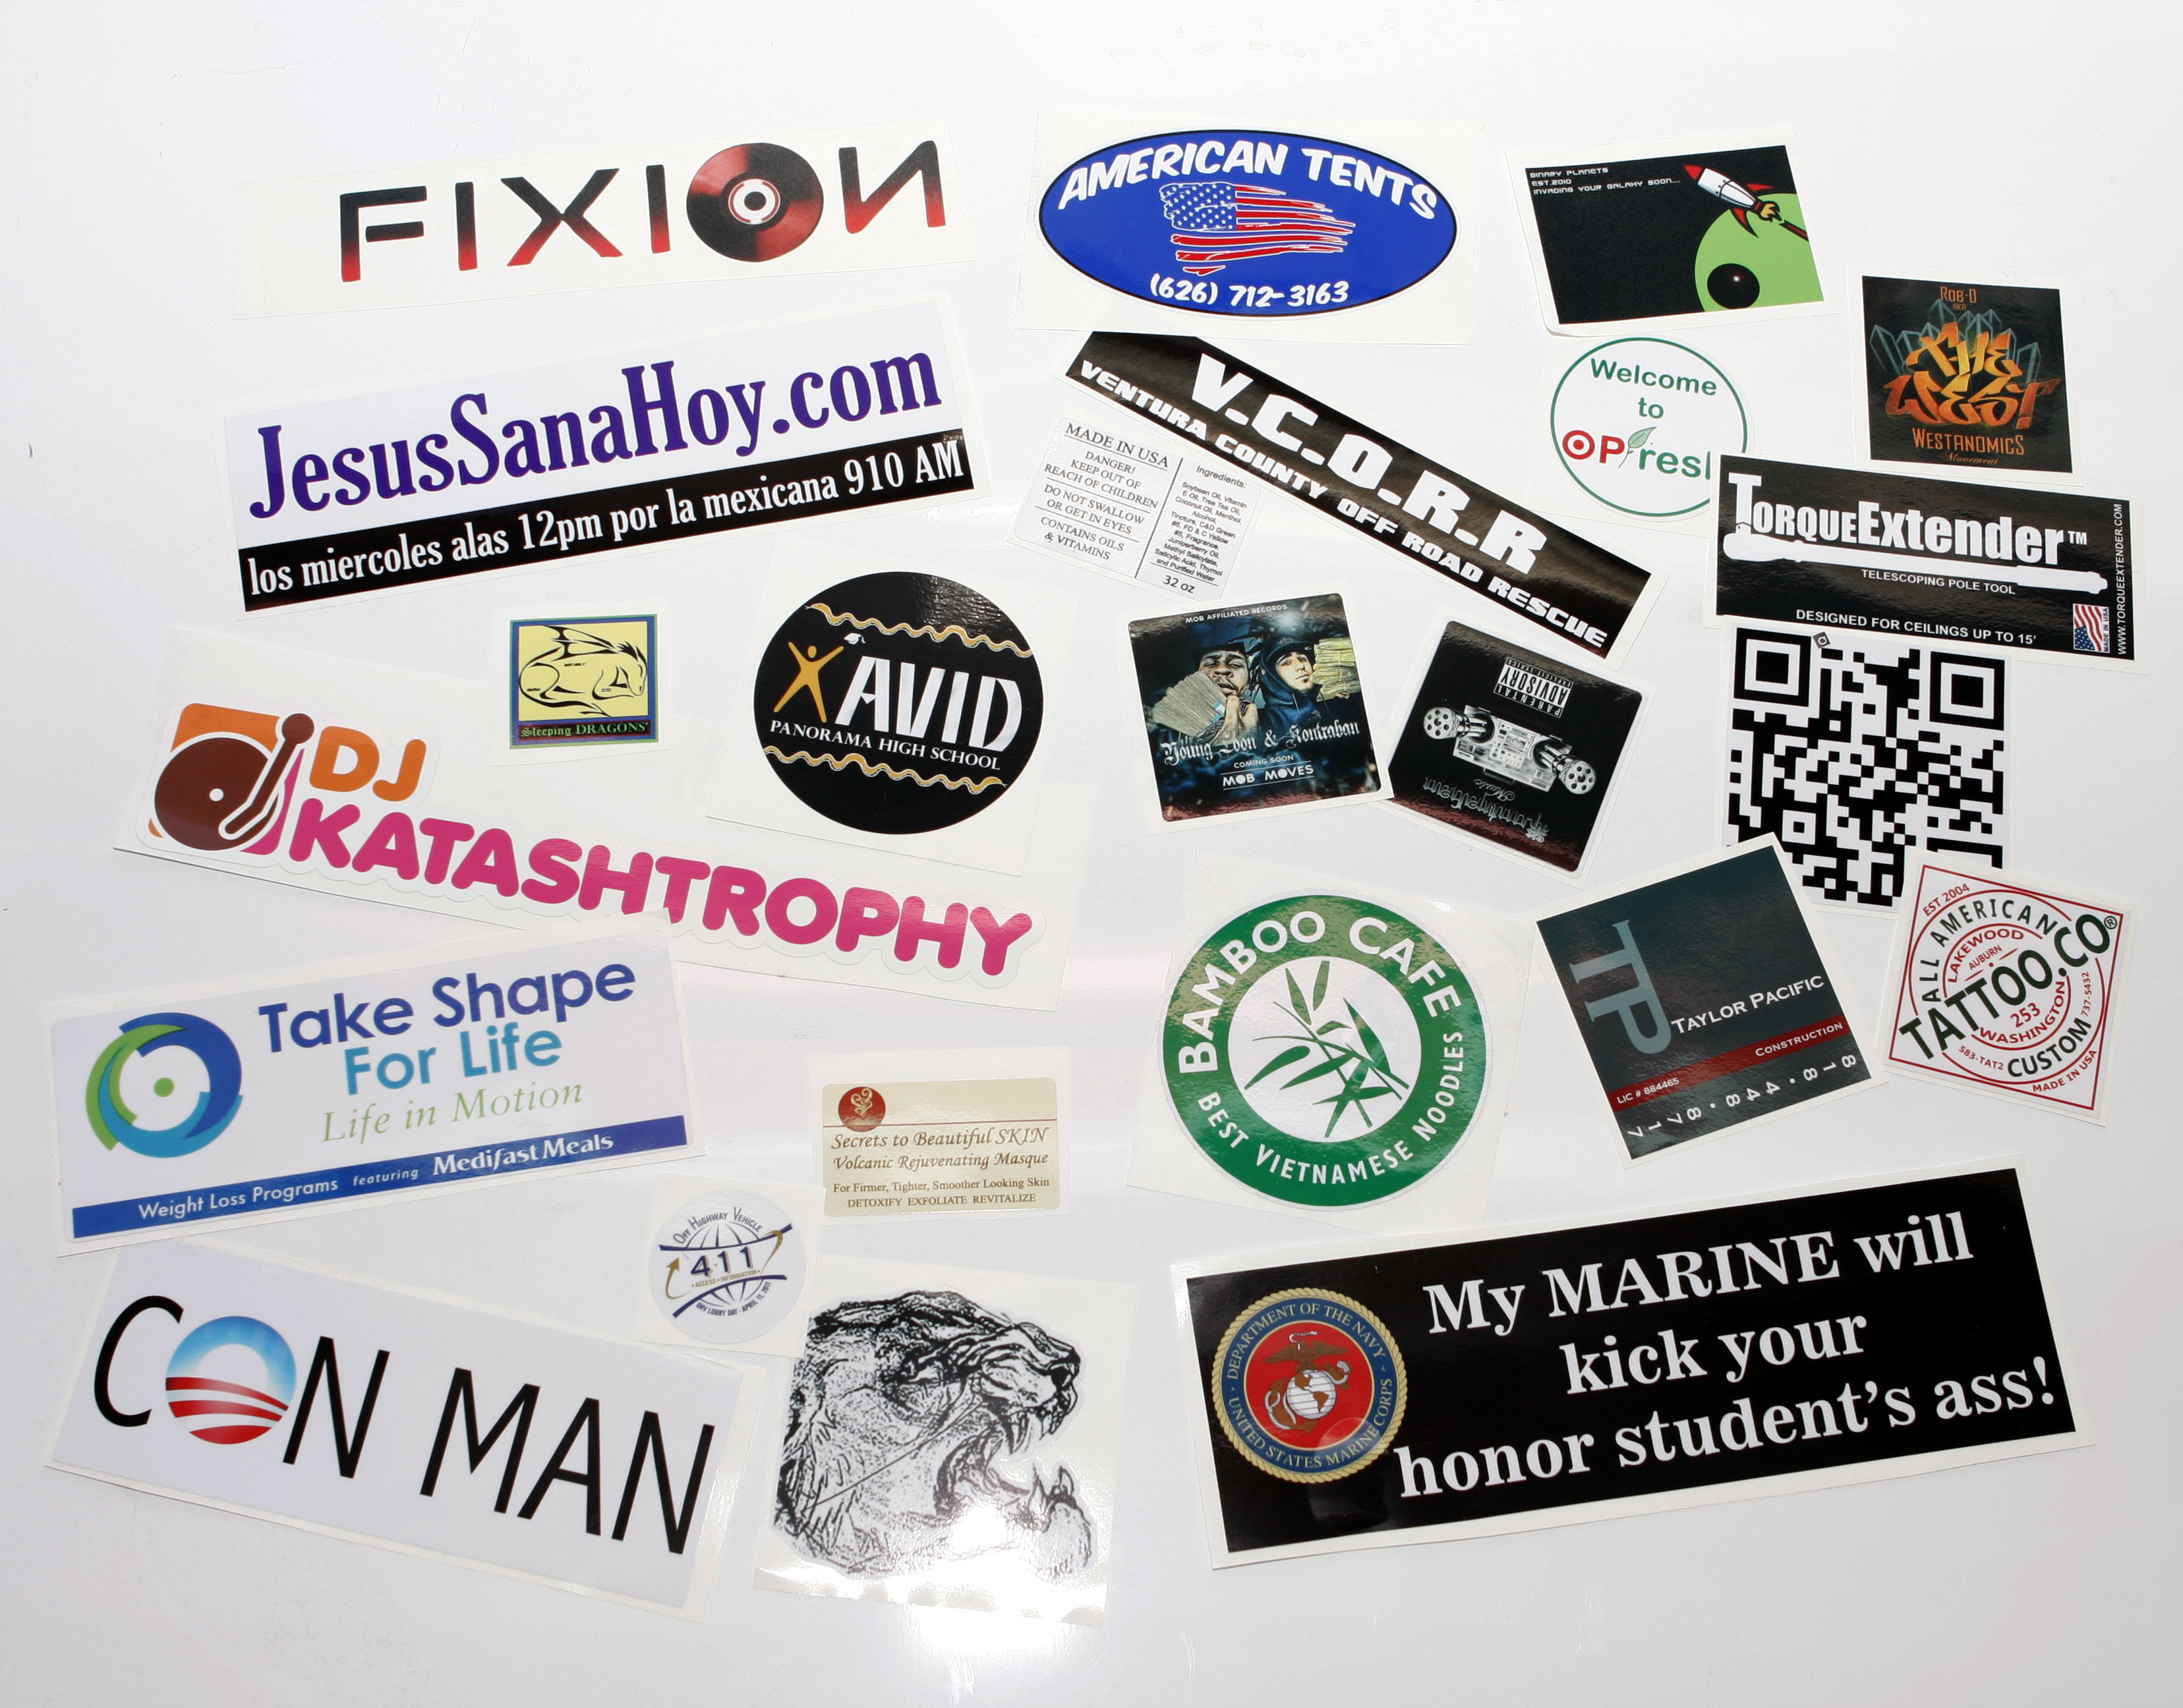 Custom printed stickers bumper stickers at spectracolor in simi valley ca